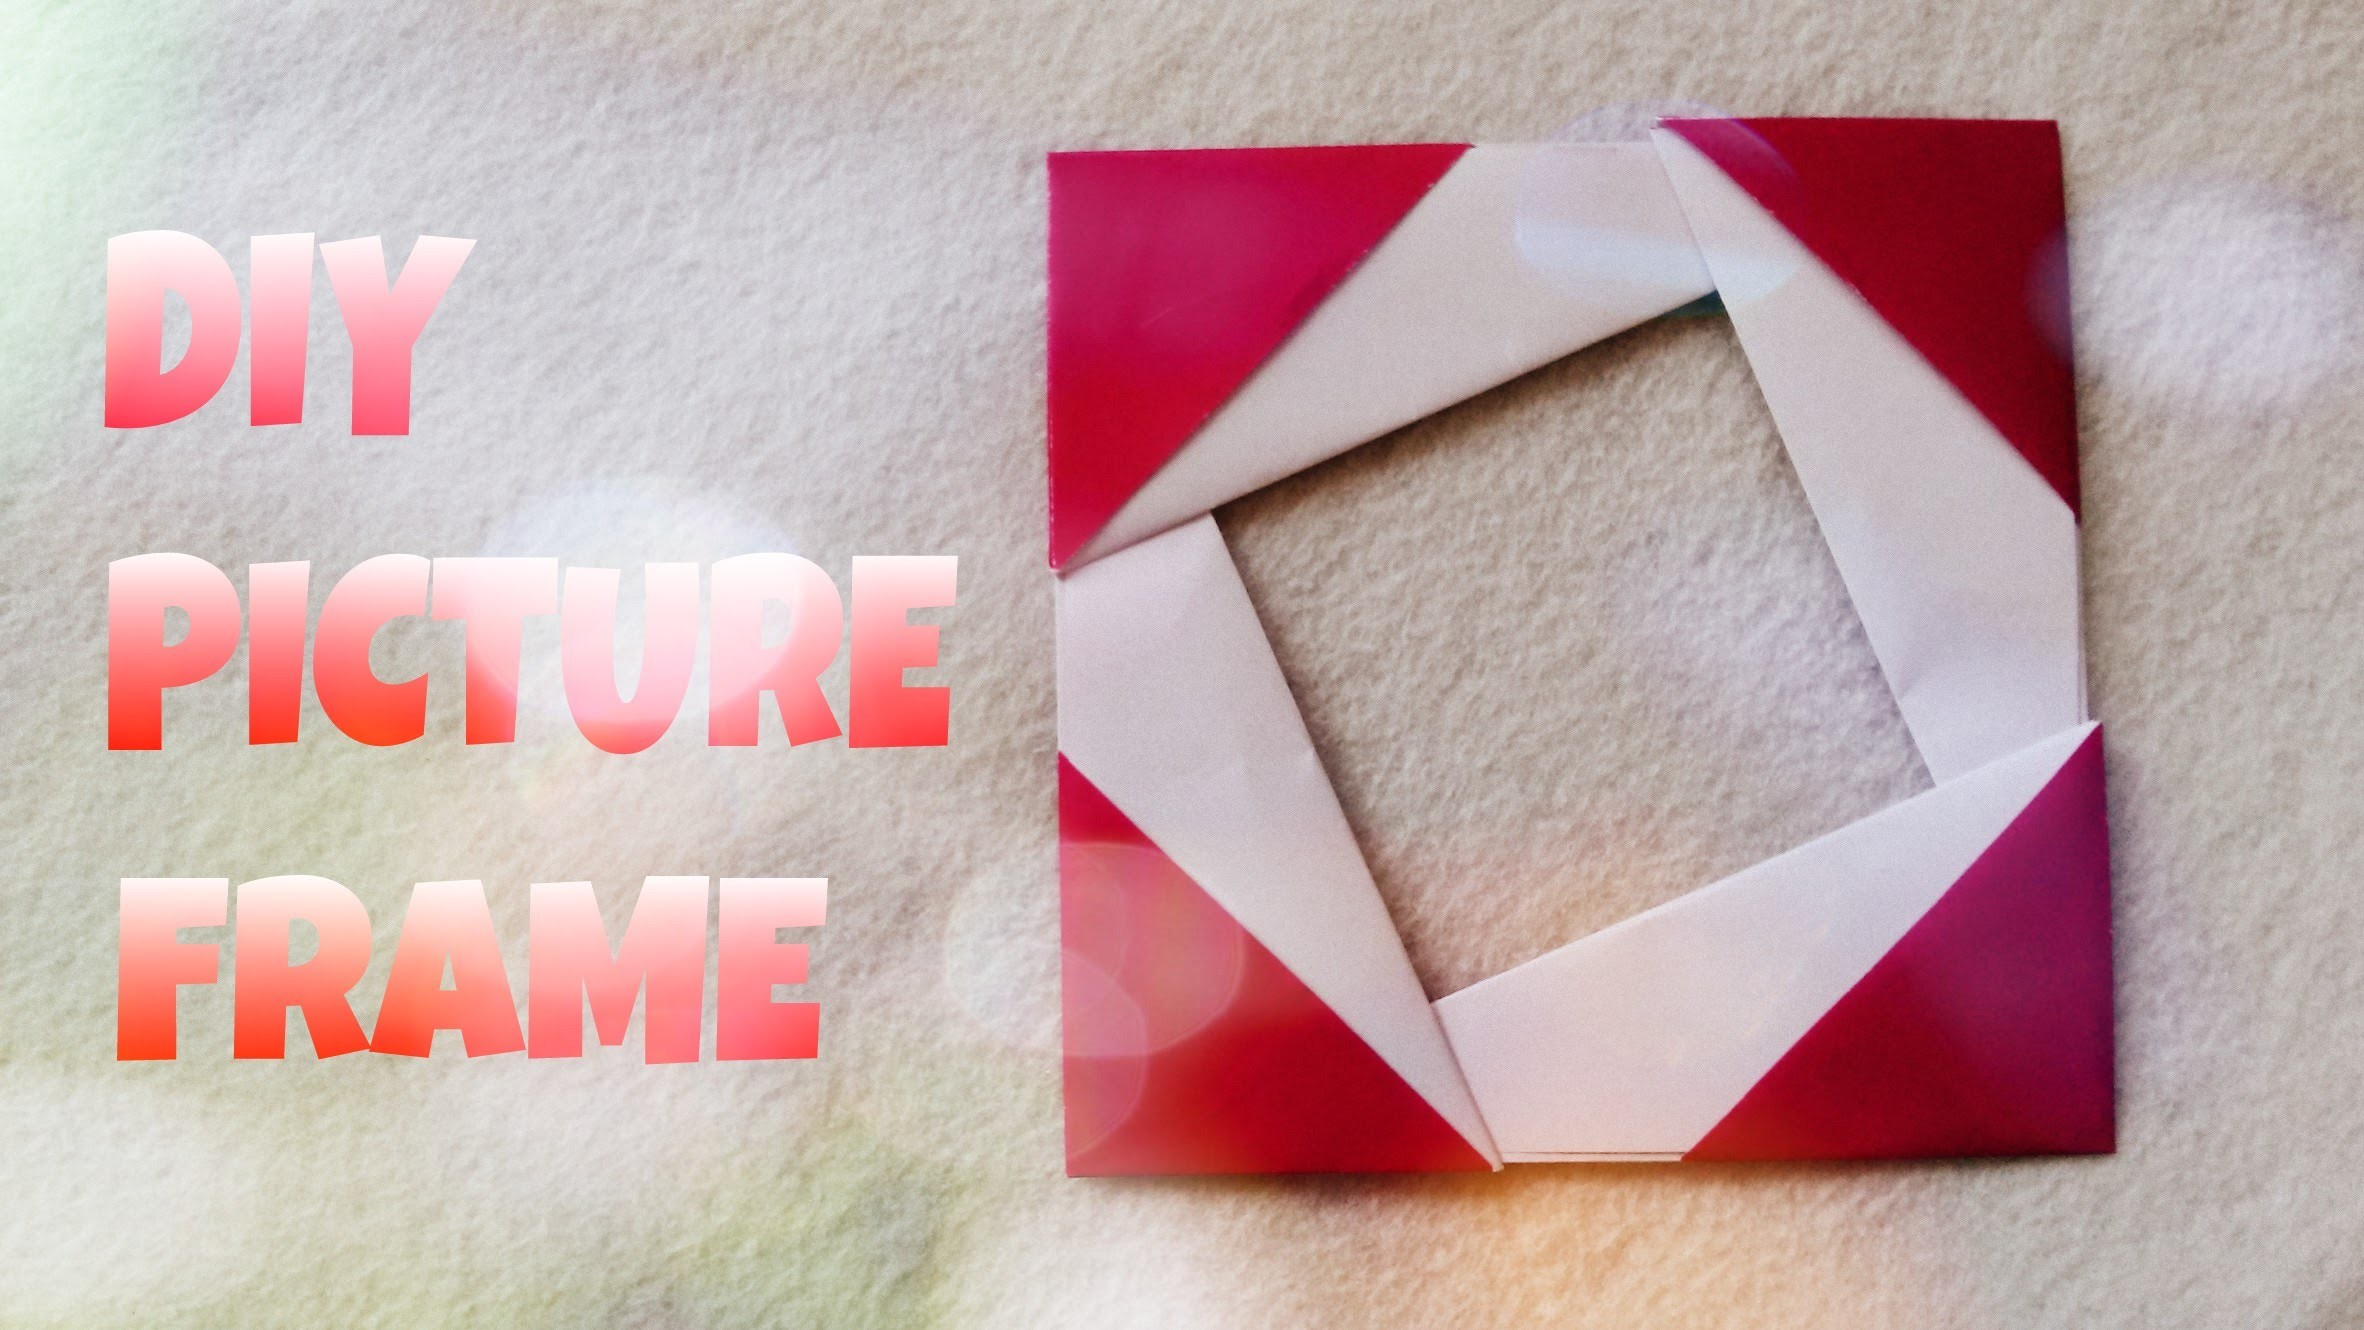 diy - photo frame handmade - picture frame making with paper